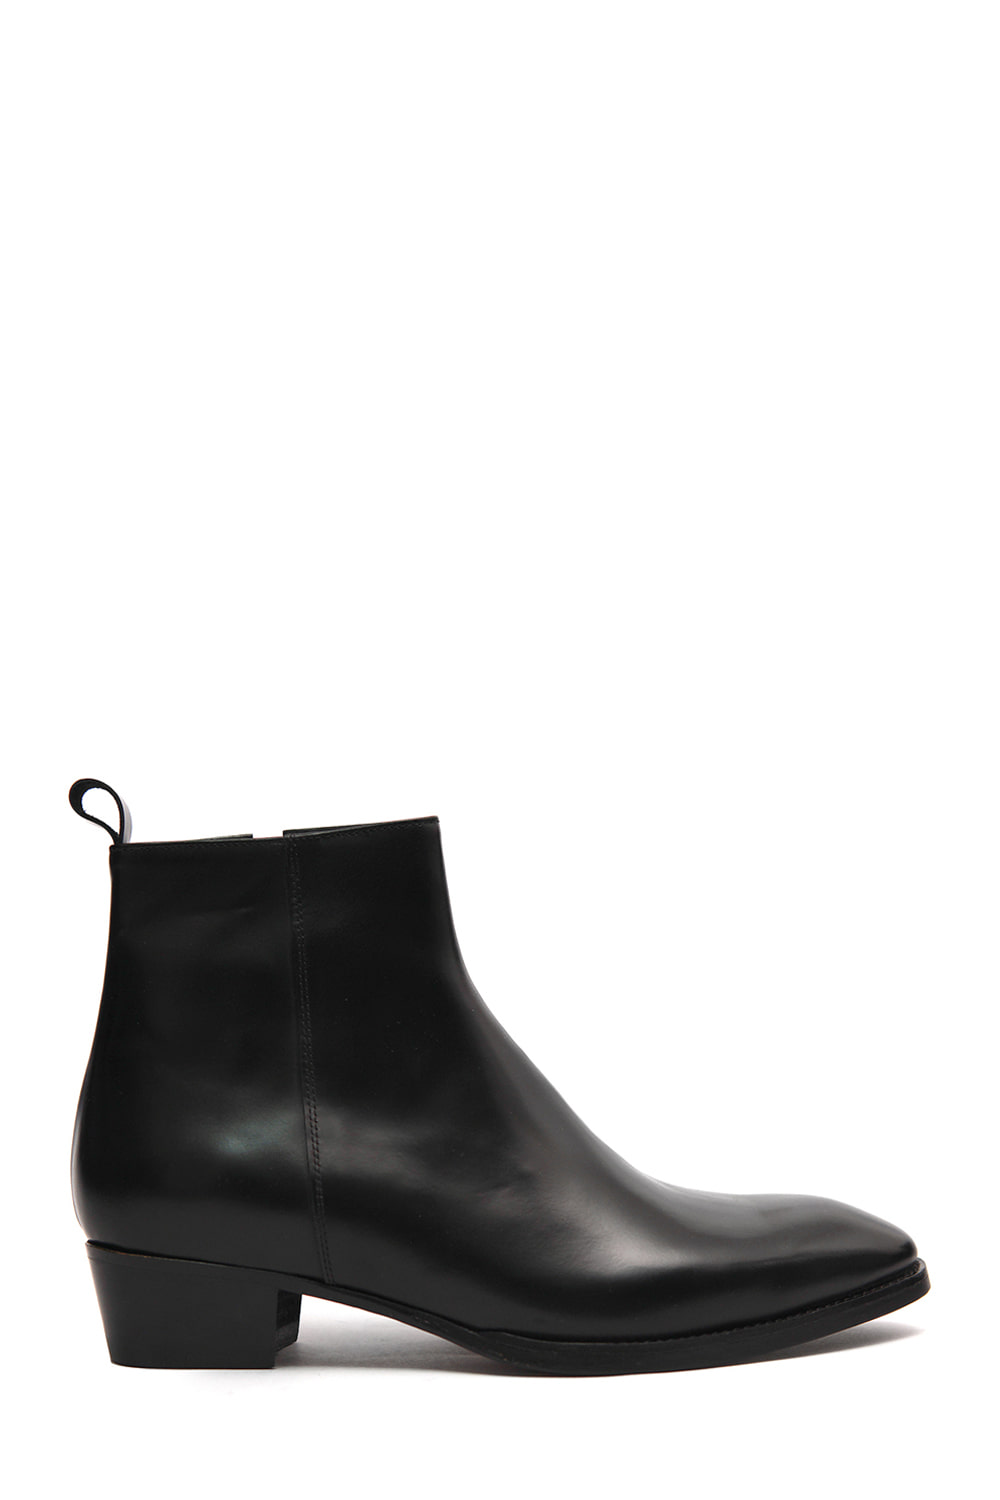 F003 /Ankle Boots